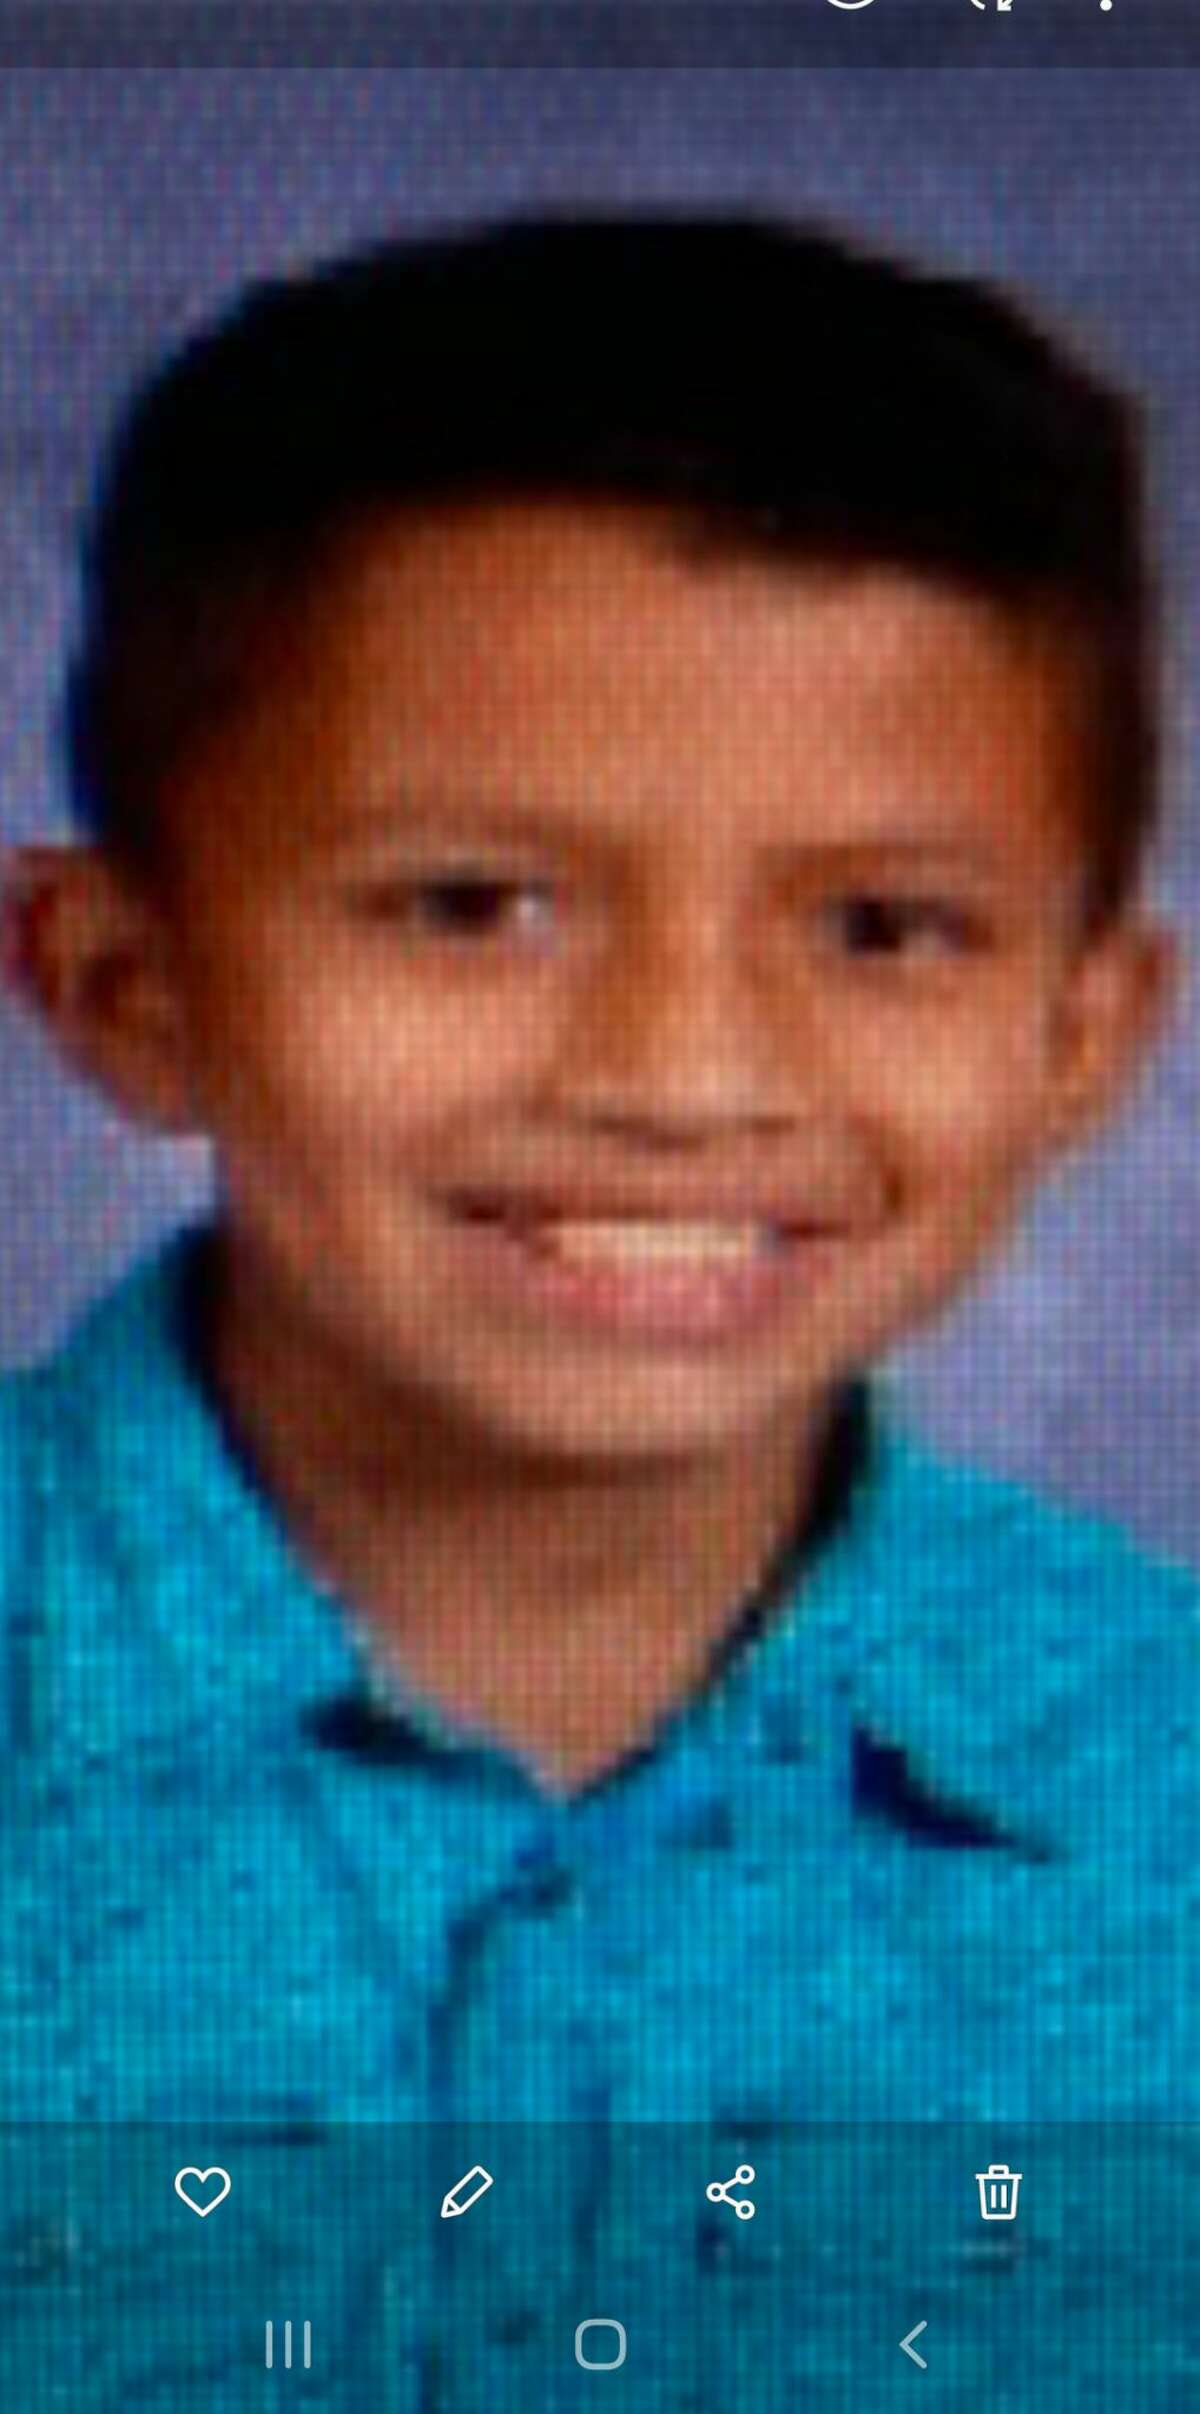 """Adolfo Vera is approximately 4'4"""", 80lbs, last seen wearing a yellow shirt, black pants, dark colored coat."""